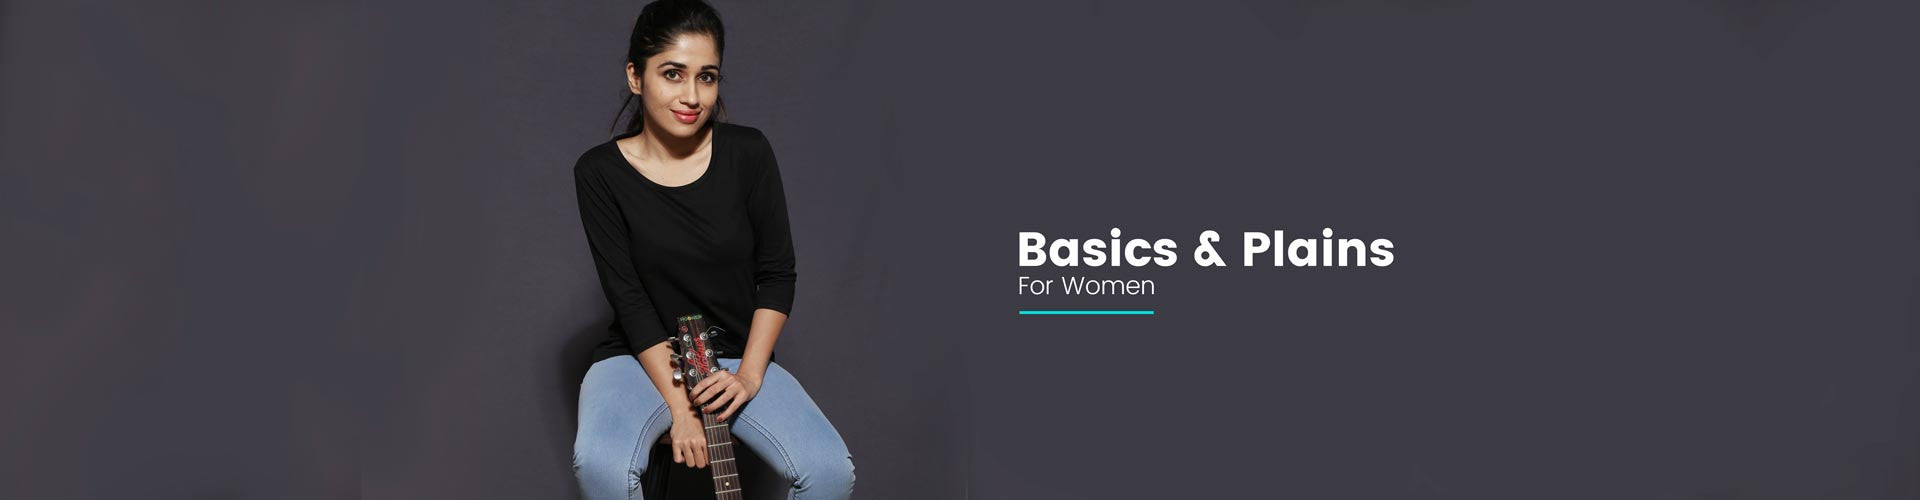 Basics and Plains for Women